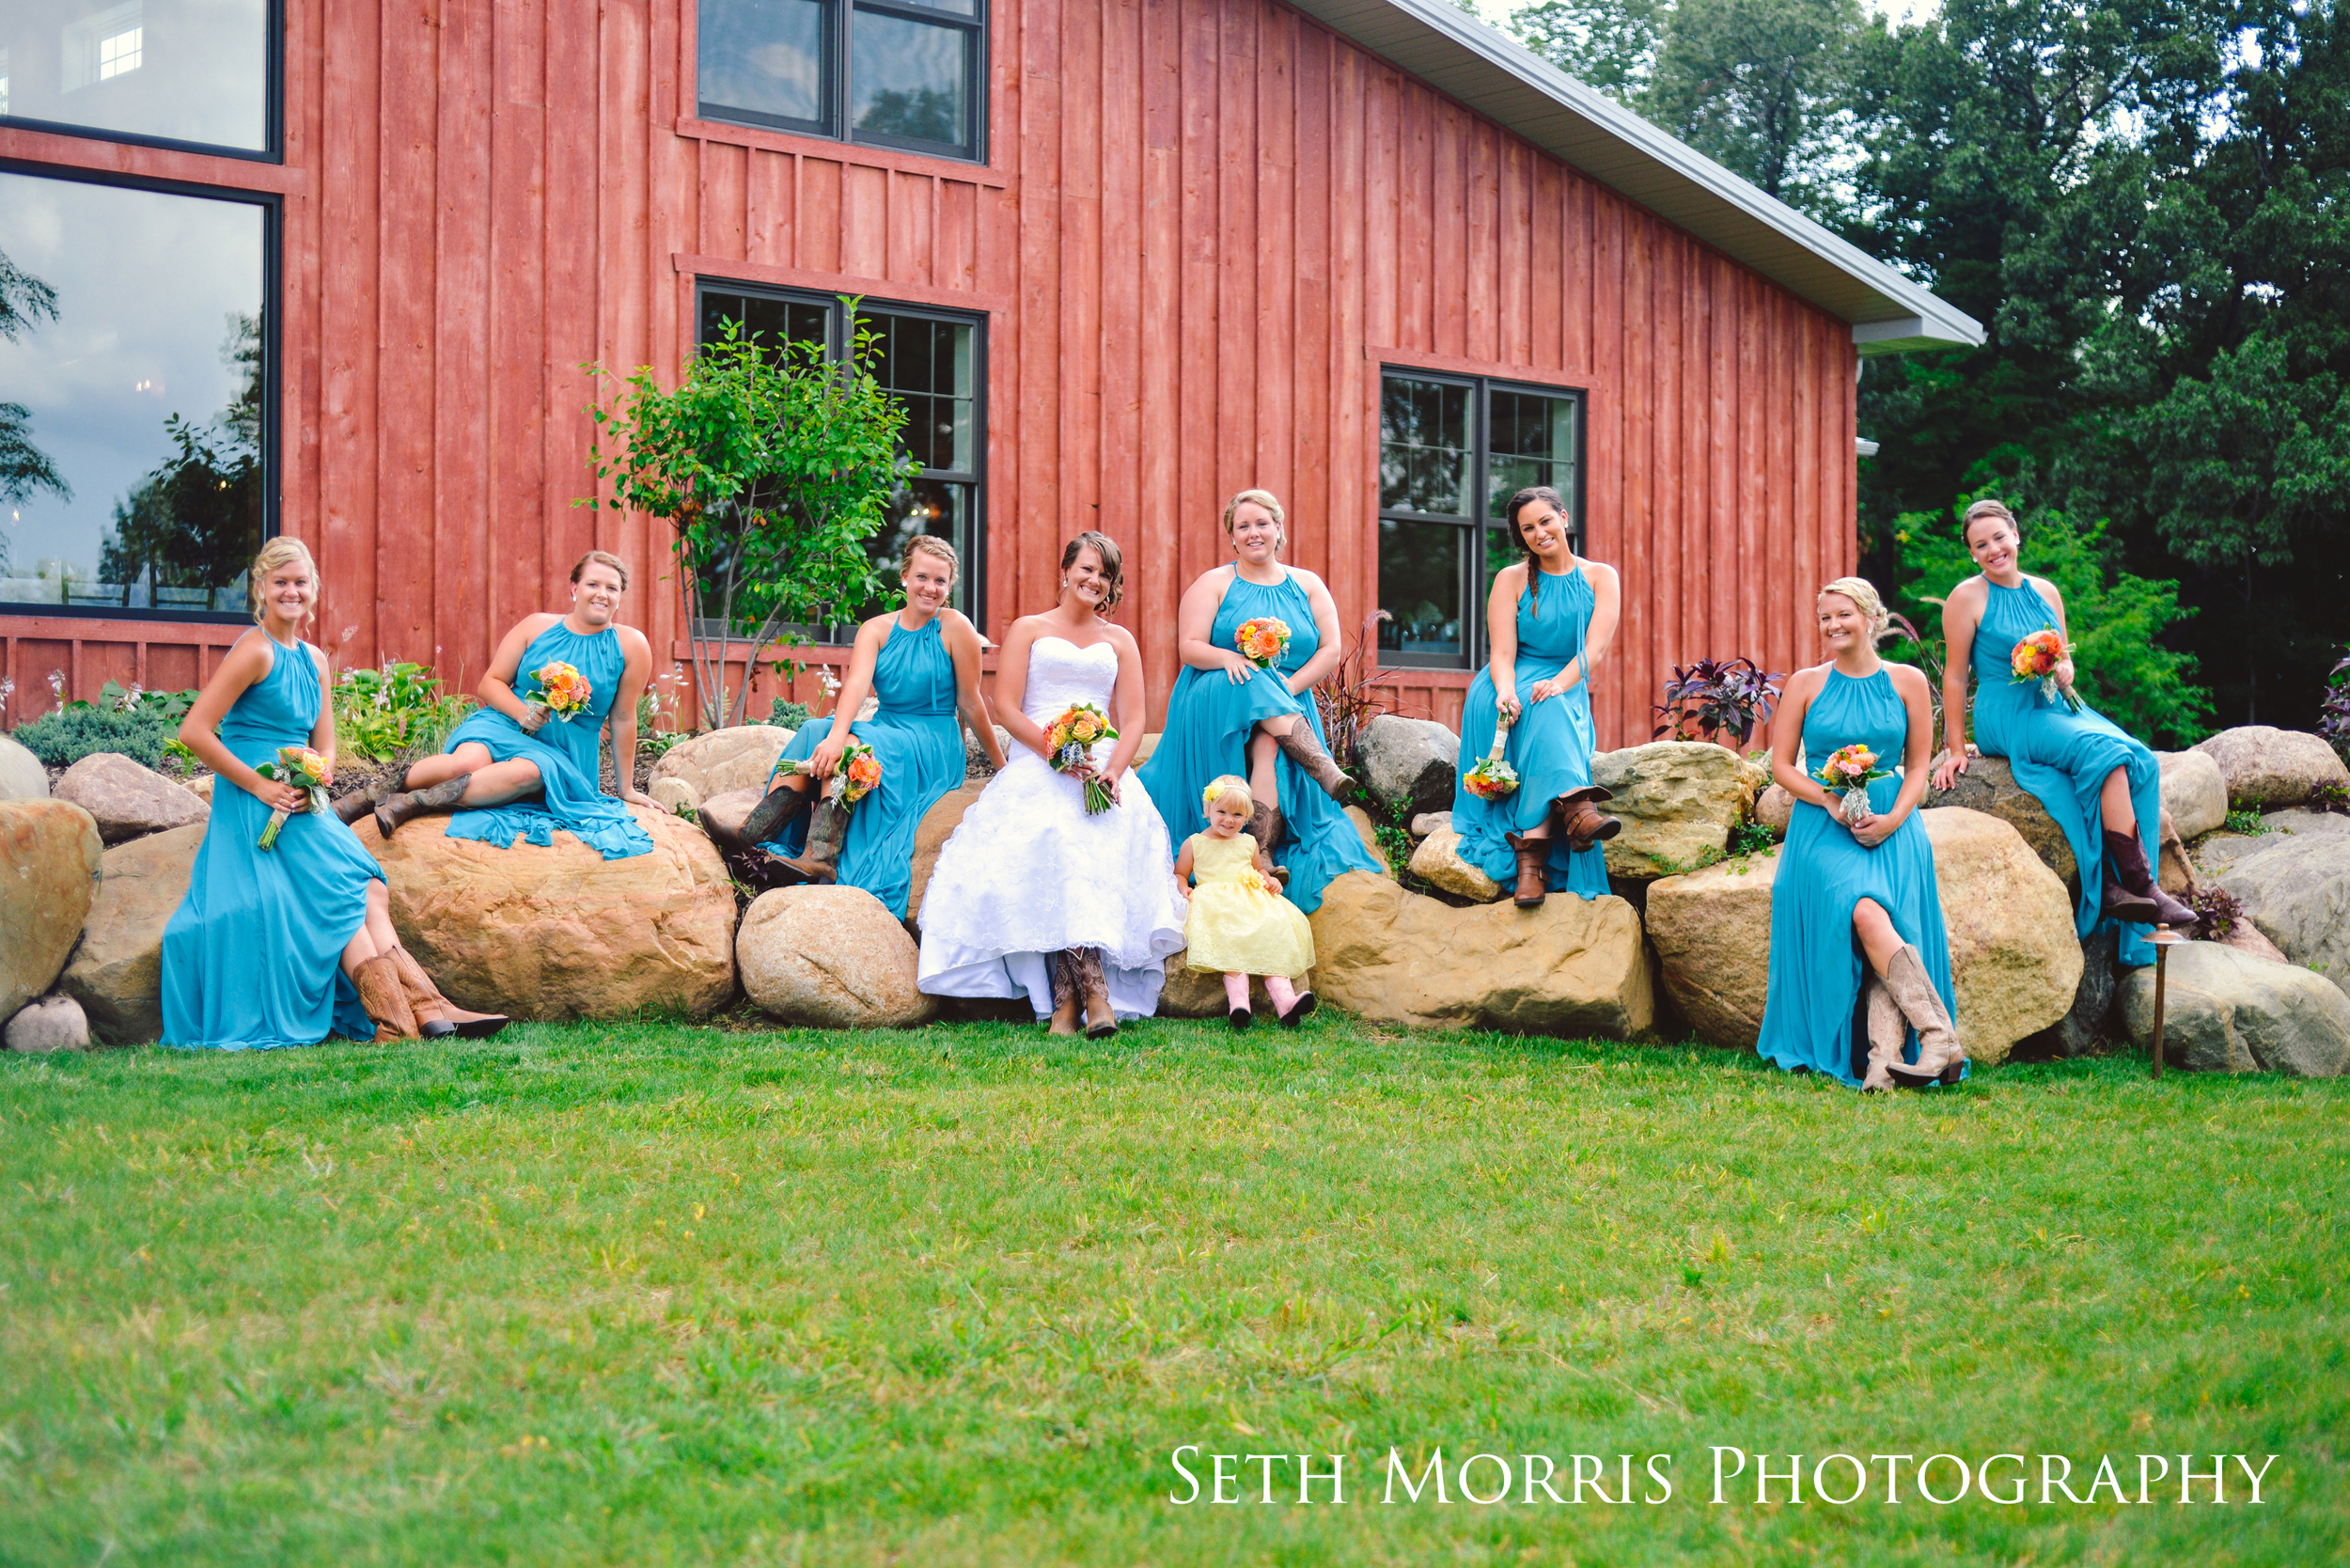 hornbaker-barn-wedding-photo-princeton-photographer-38.jpg